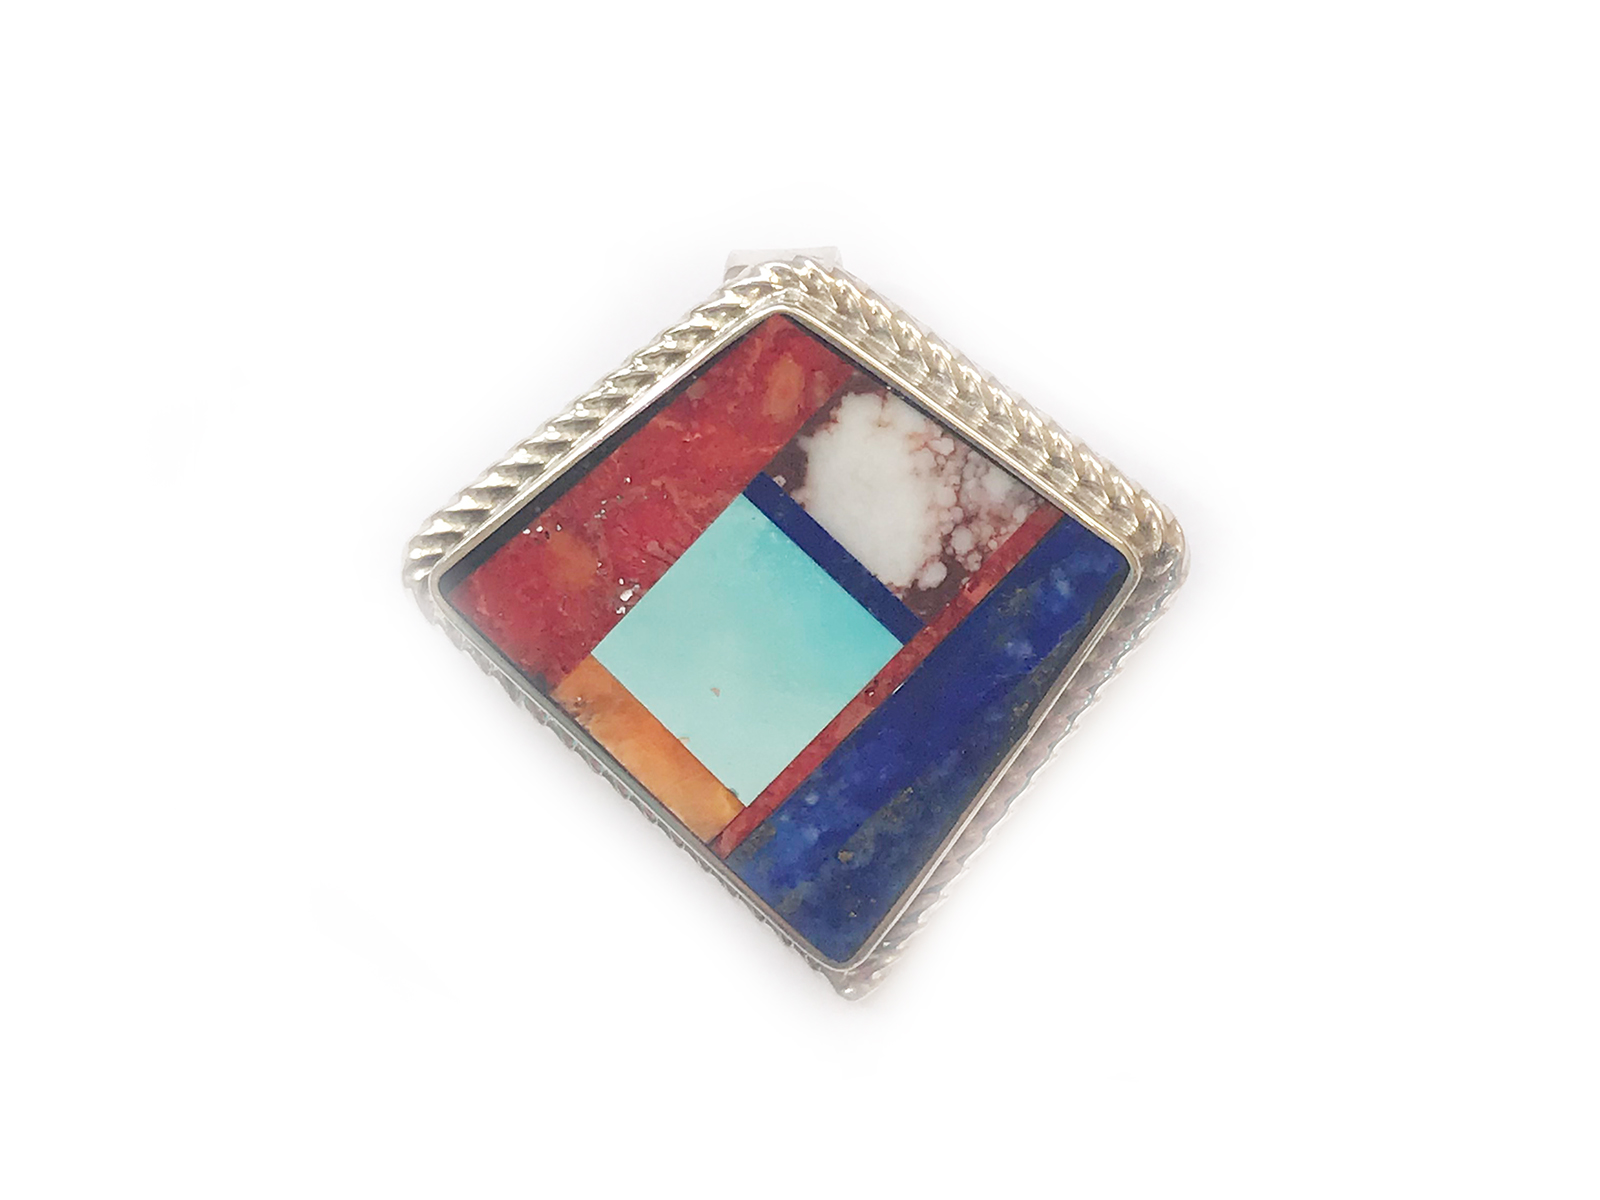 Stone Inlay Pendant